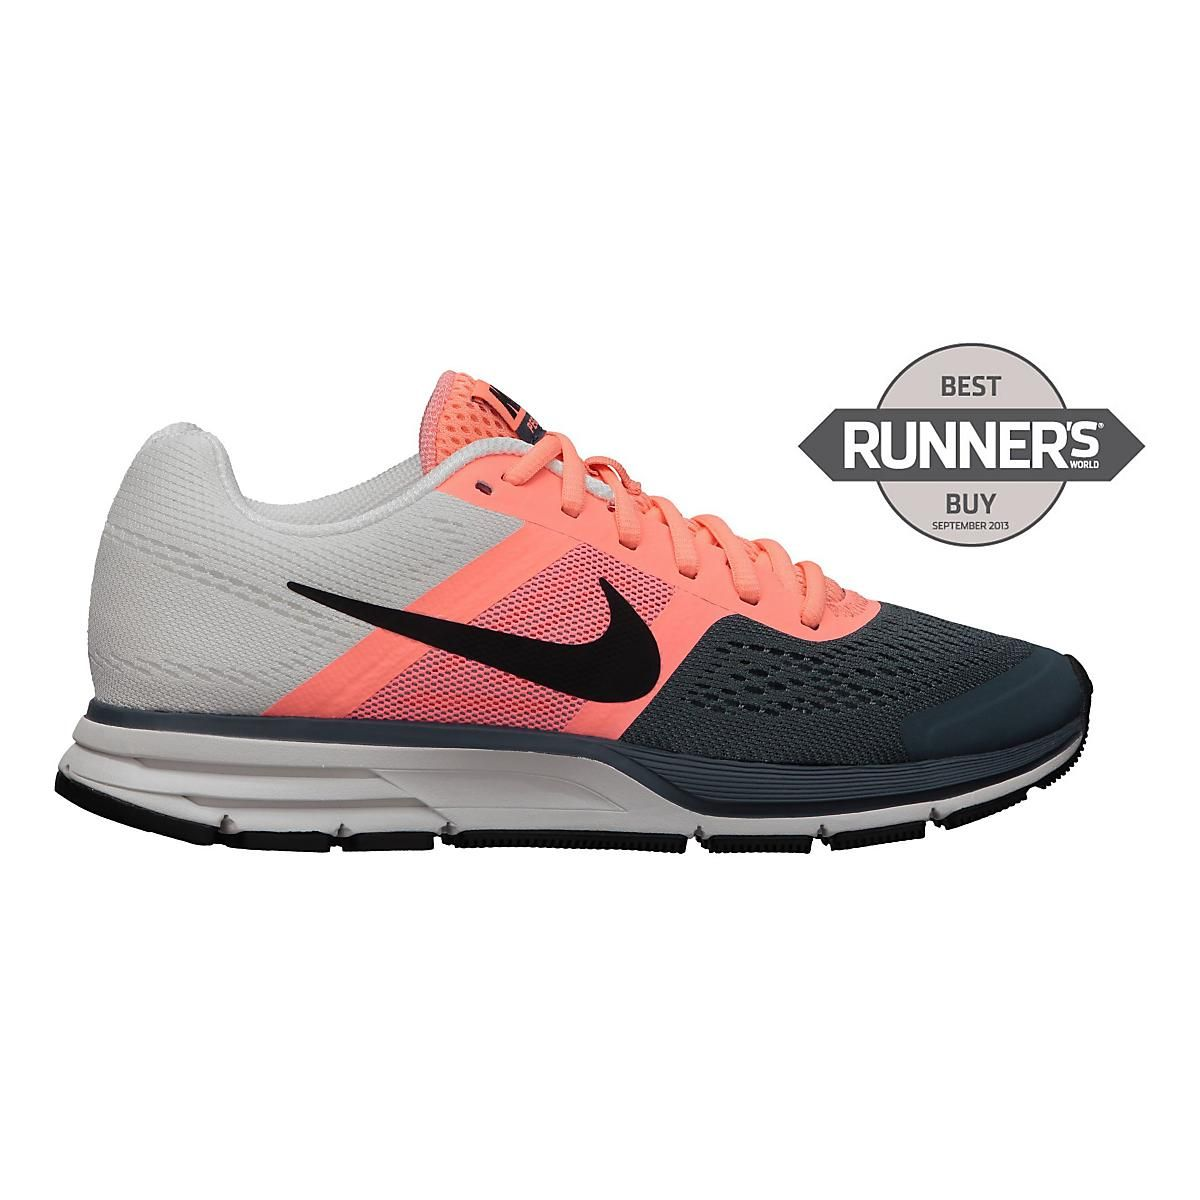 super popular 899a0 e1127 Nike Basketball Shoes · Women Nike. Running Routine. Fall in love all over  again with the cushioning and support that youve come to expect